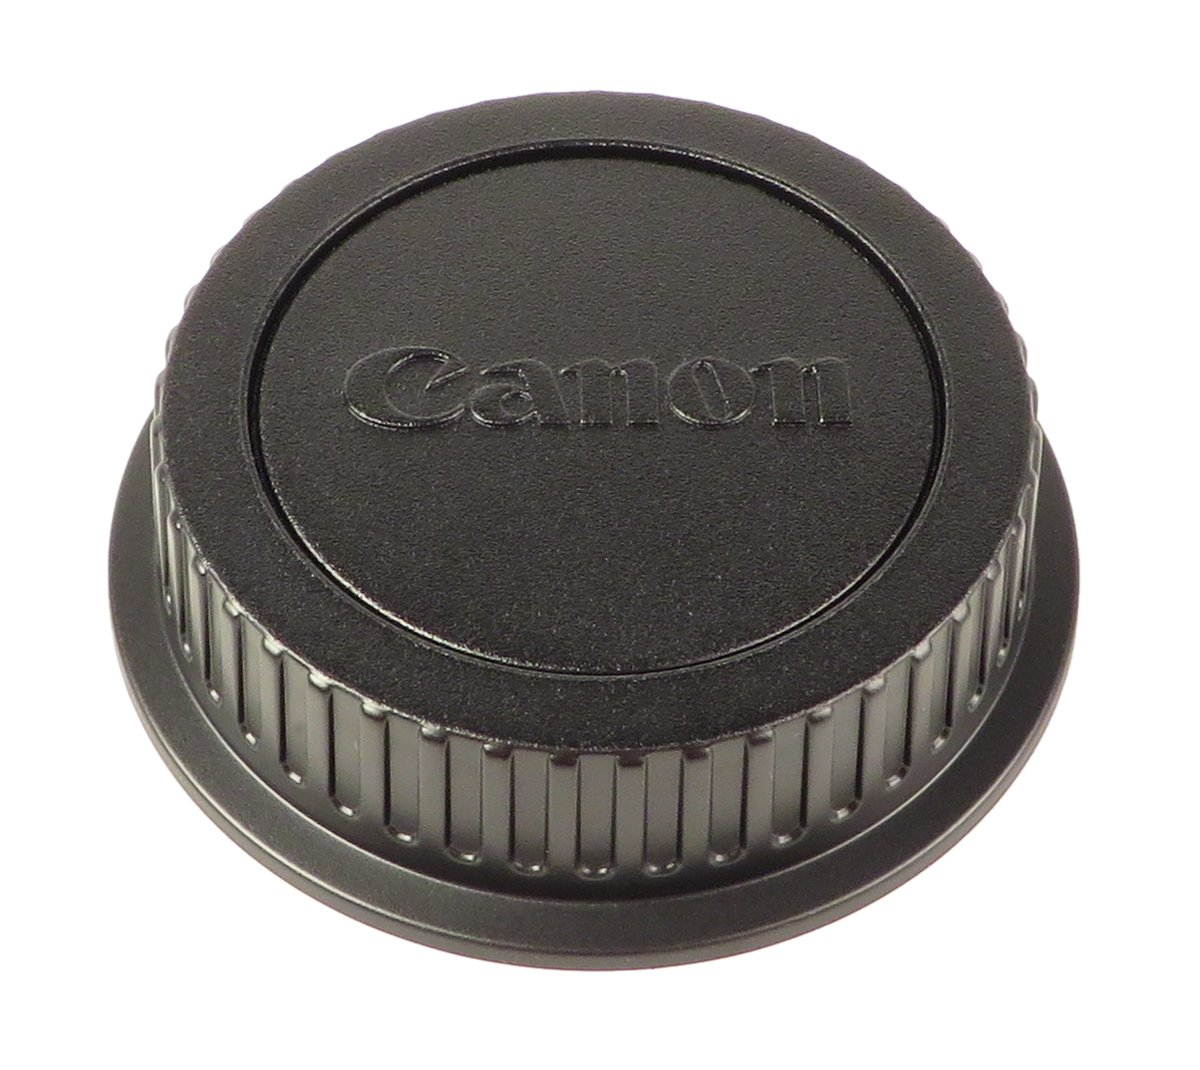 Rear Lens Cap for CN-E 50mm